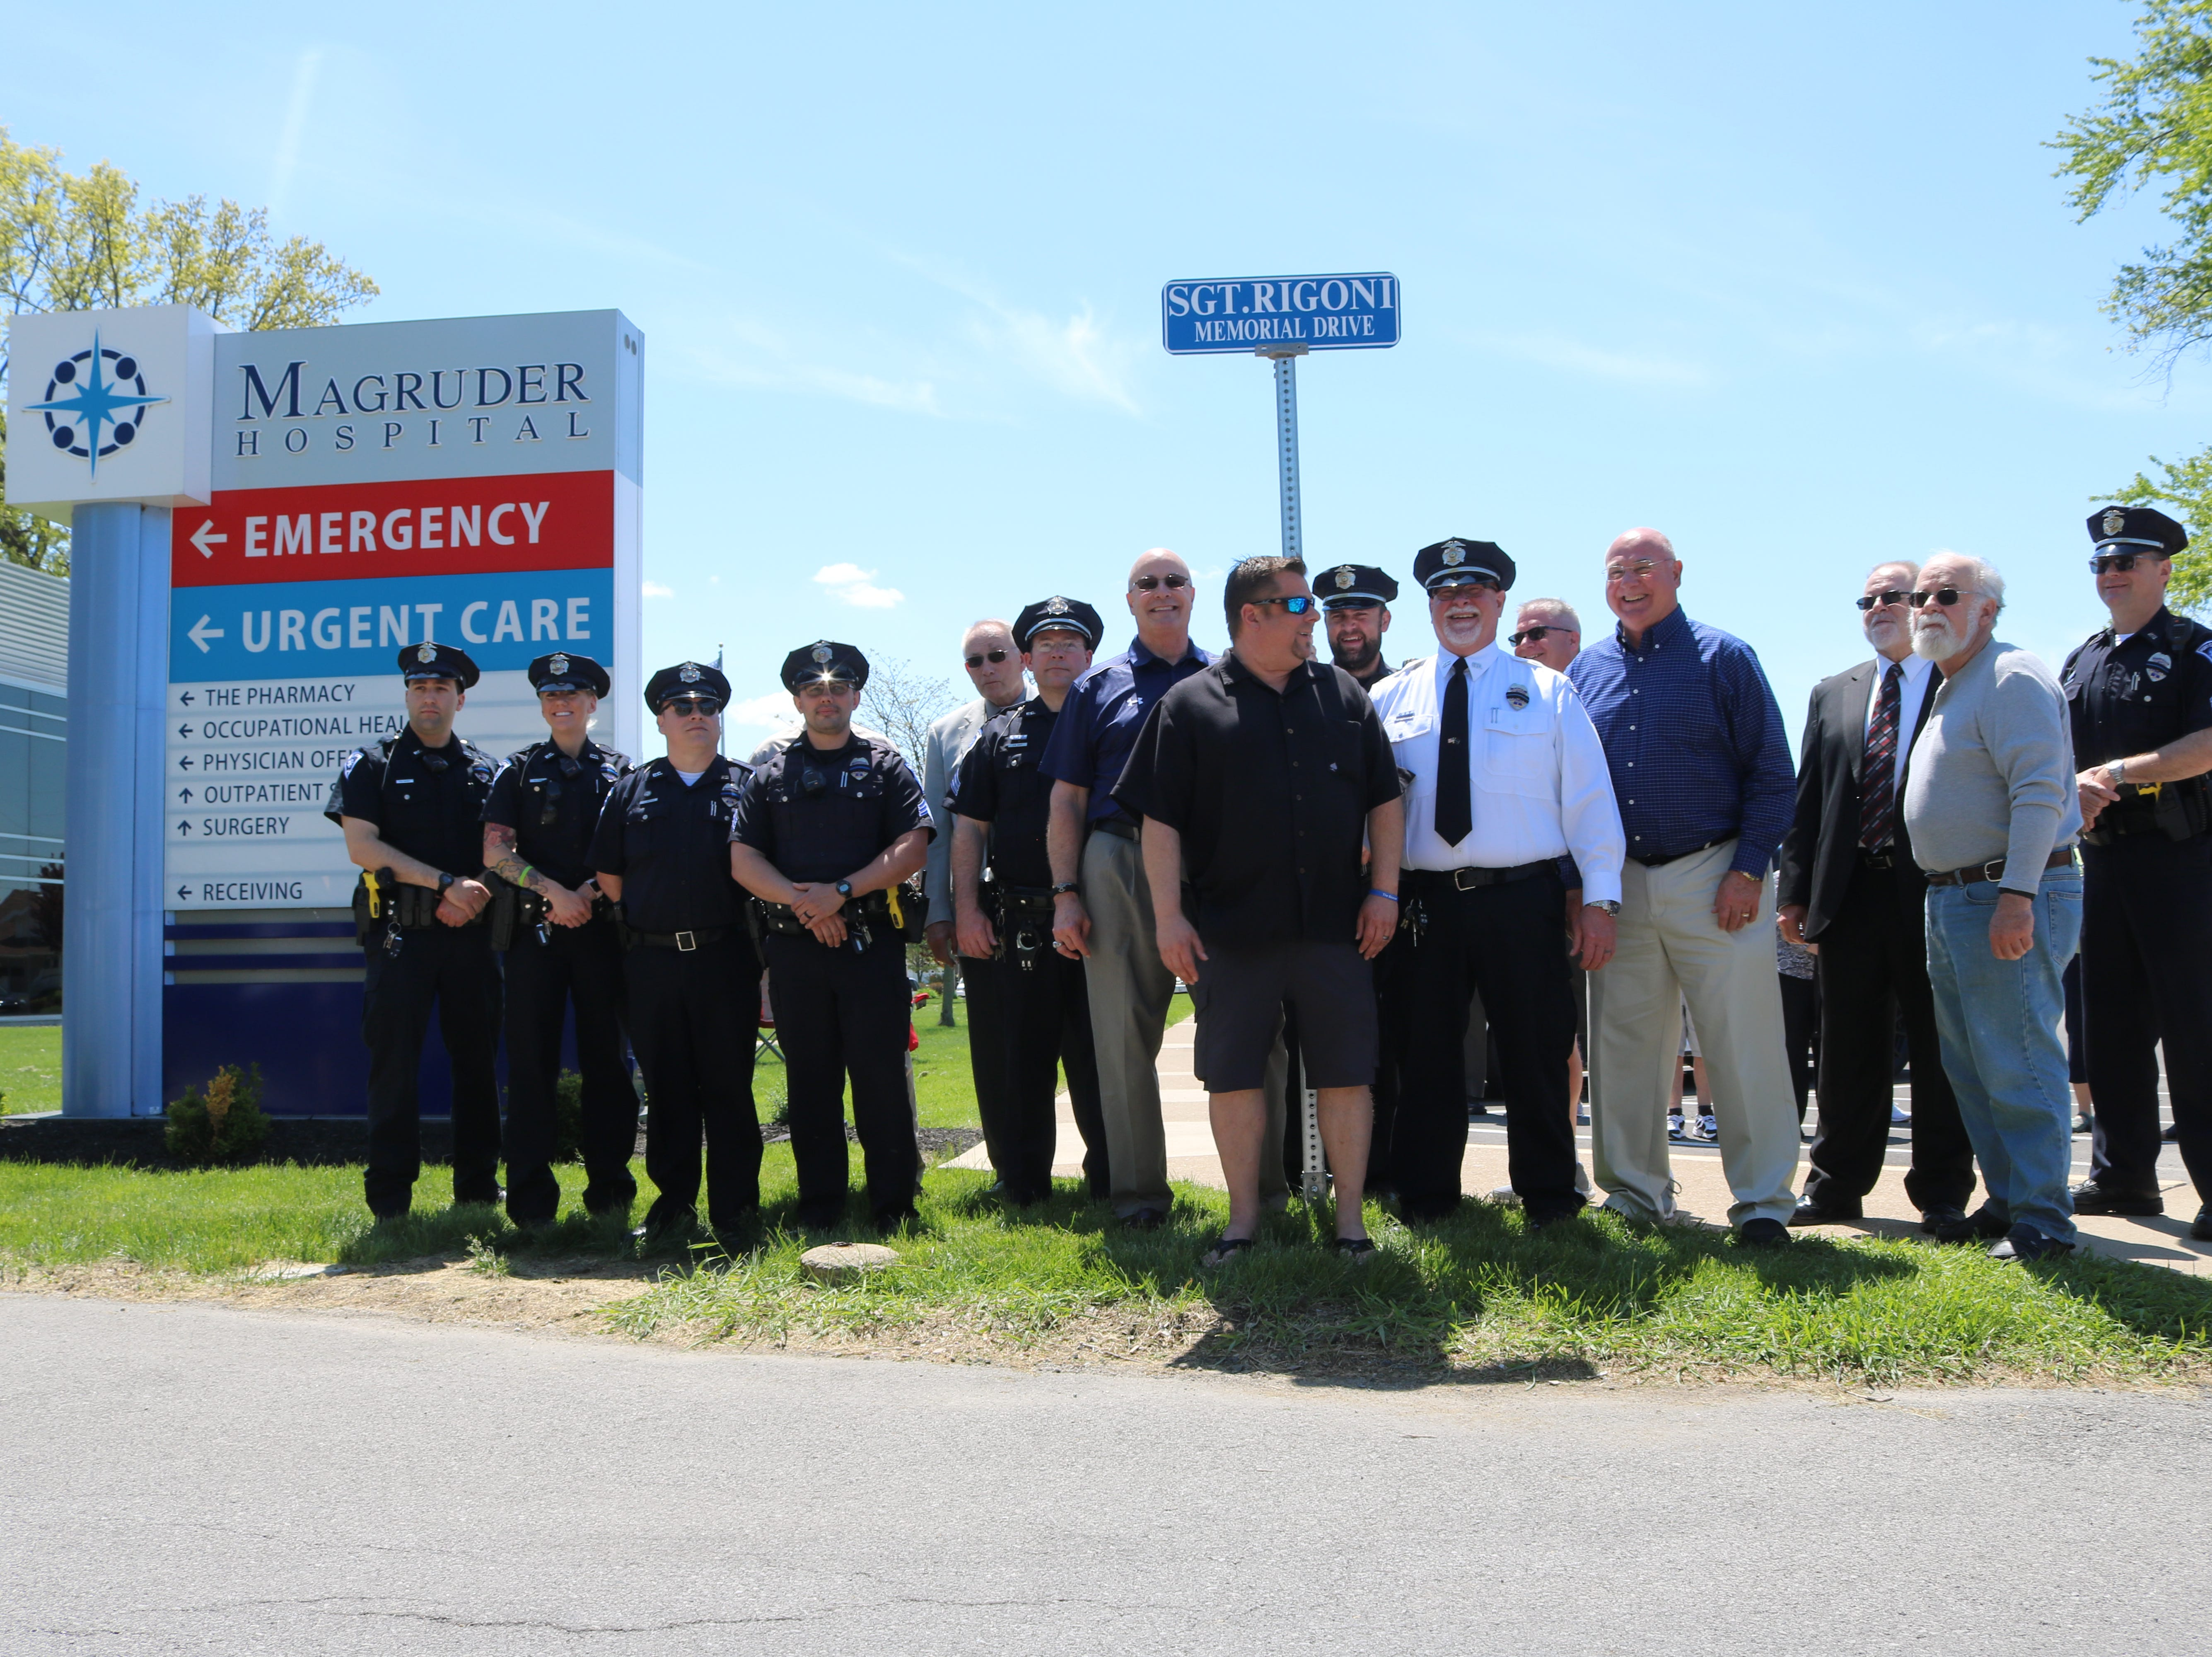 Kelly and Billy Rigoni, son of the late Sgt. Robert B. Rigoni, who died in a plane crash while responding to an emergency reported on Kelleys Island in 1983, stands with former police officers before the sign marking an eastern portion of 6th Street in his father's honor.